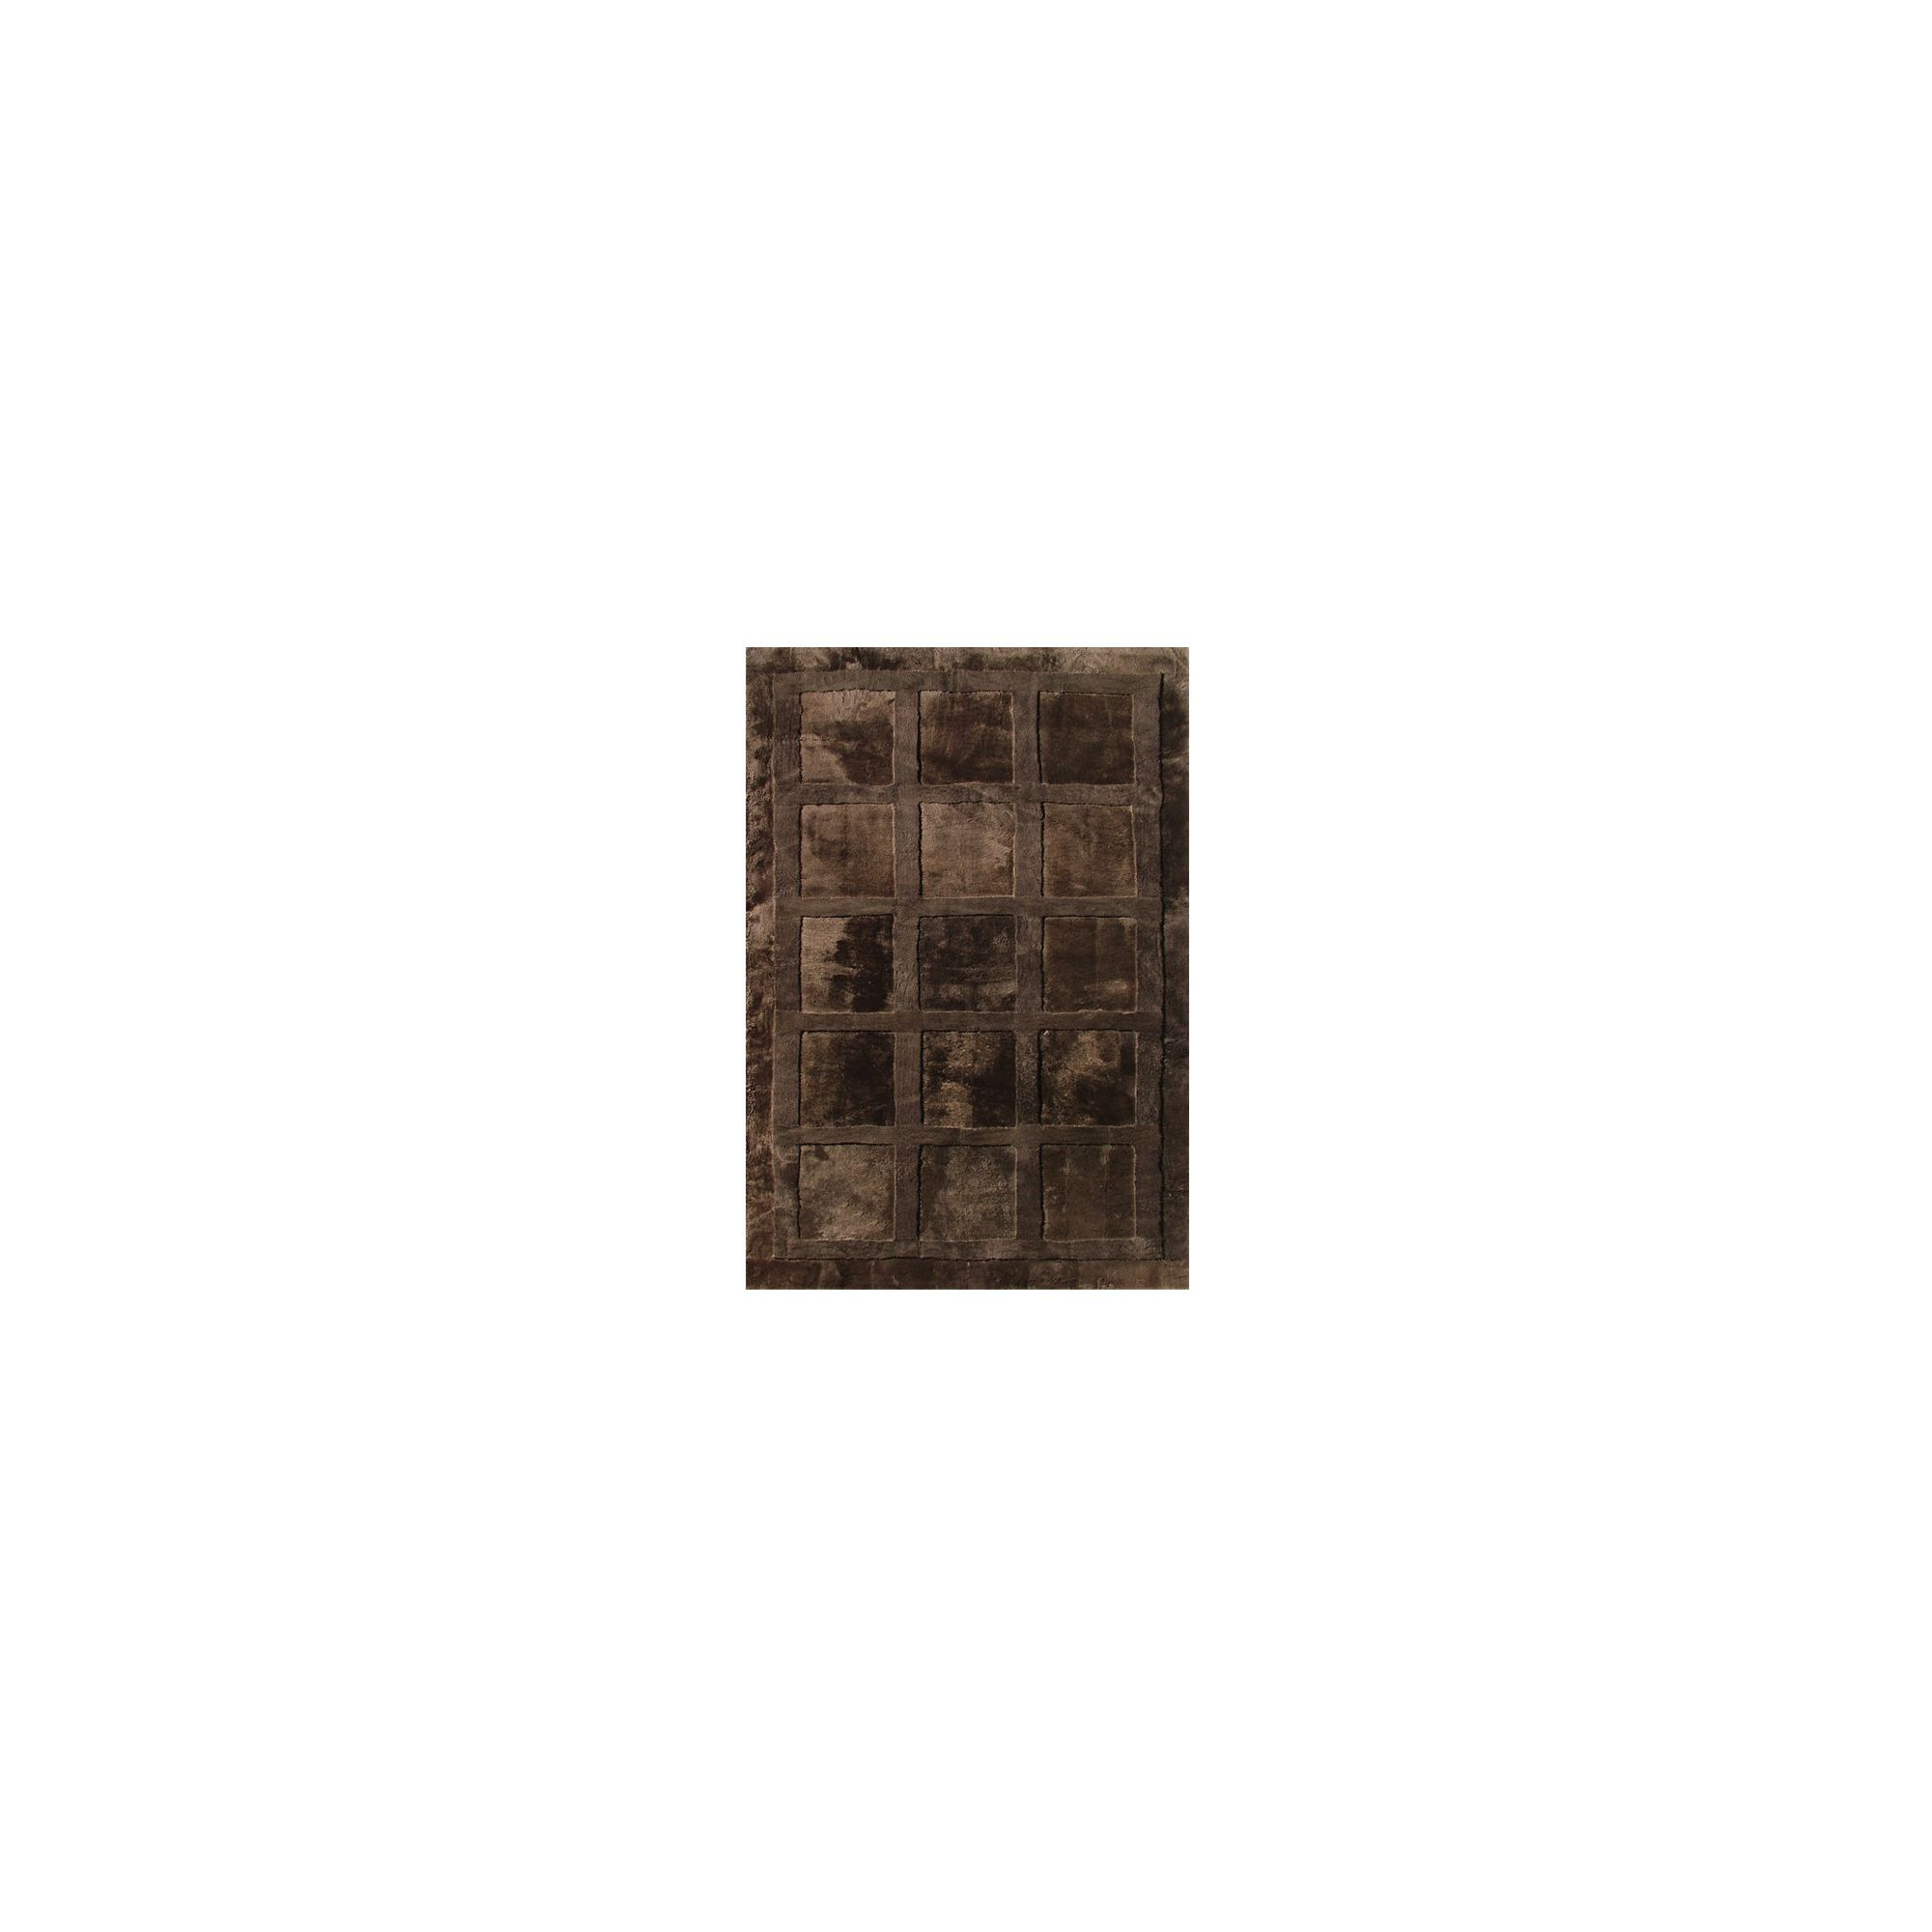 Bowron Sheepskin Shortwool Design Squares Rug - 300cm H x 200cm W x 1cm D at Tesco Direct